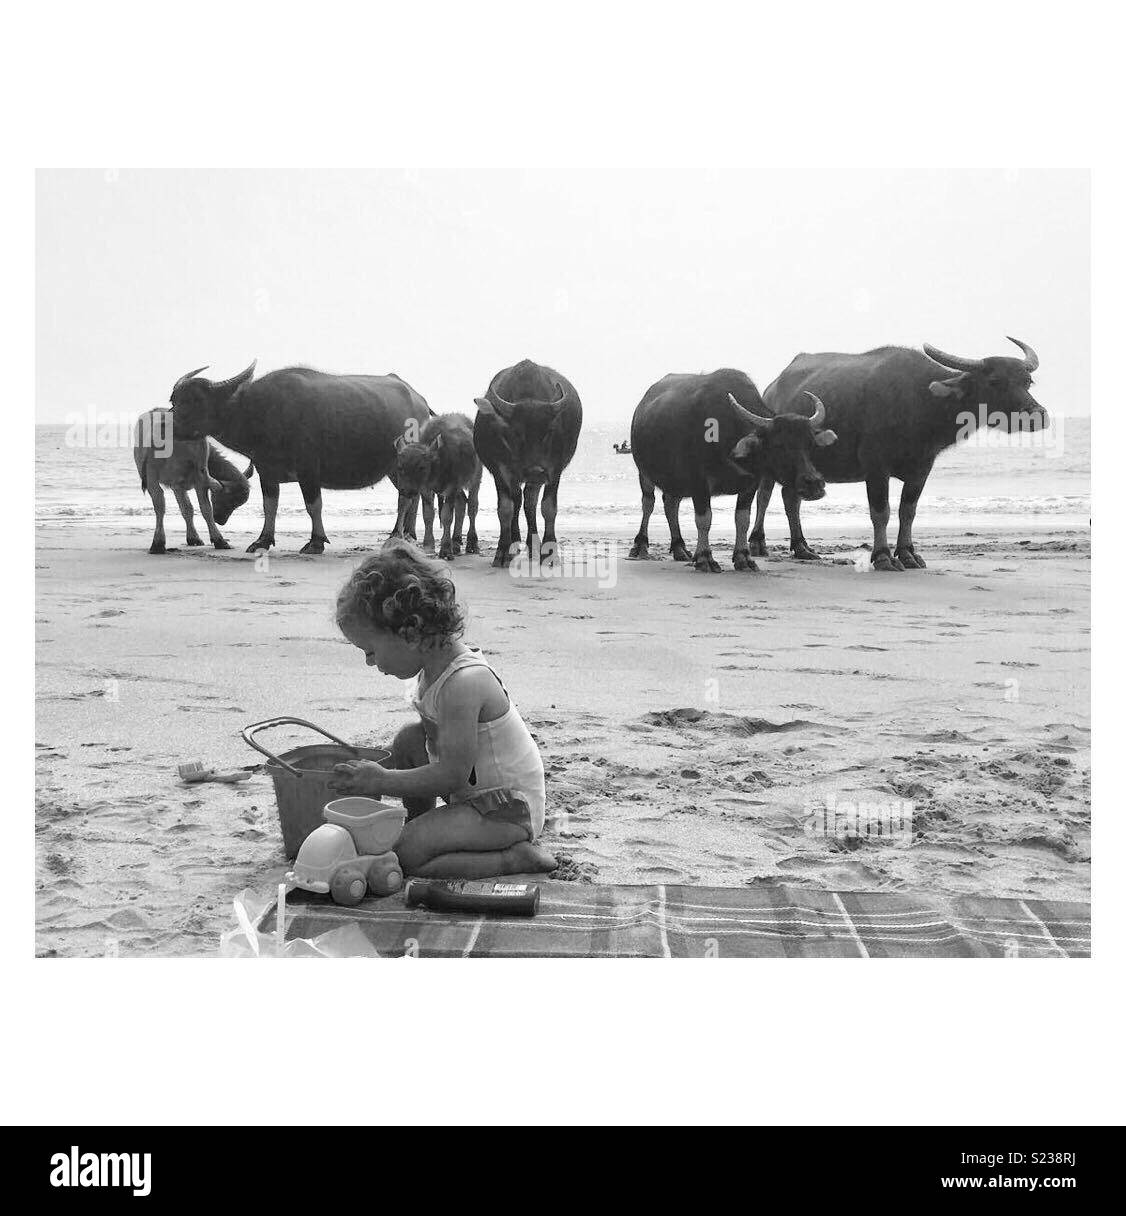 Lantau island, Hong Kong, my daughter filling a bucket with sand, and being completely  unfazed by the herd of water buffalo gathered a few feet behind her - Stock Image